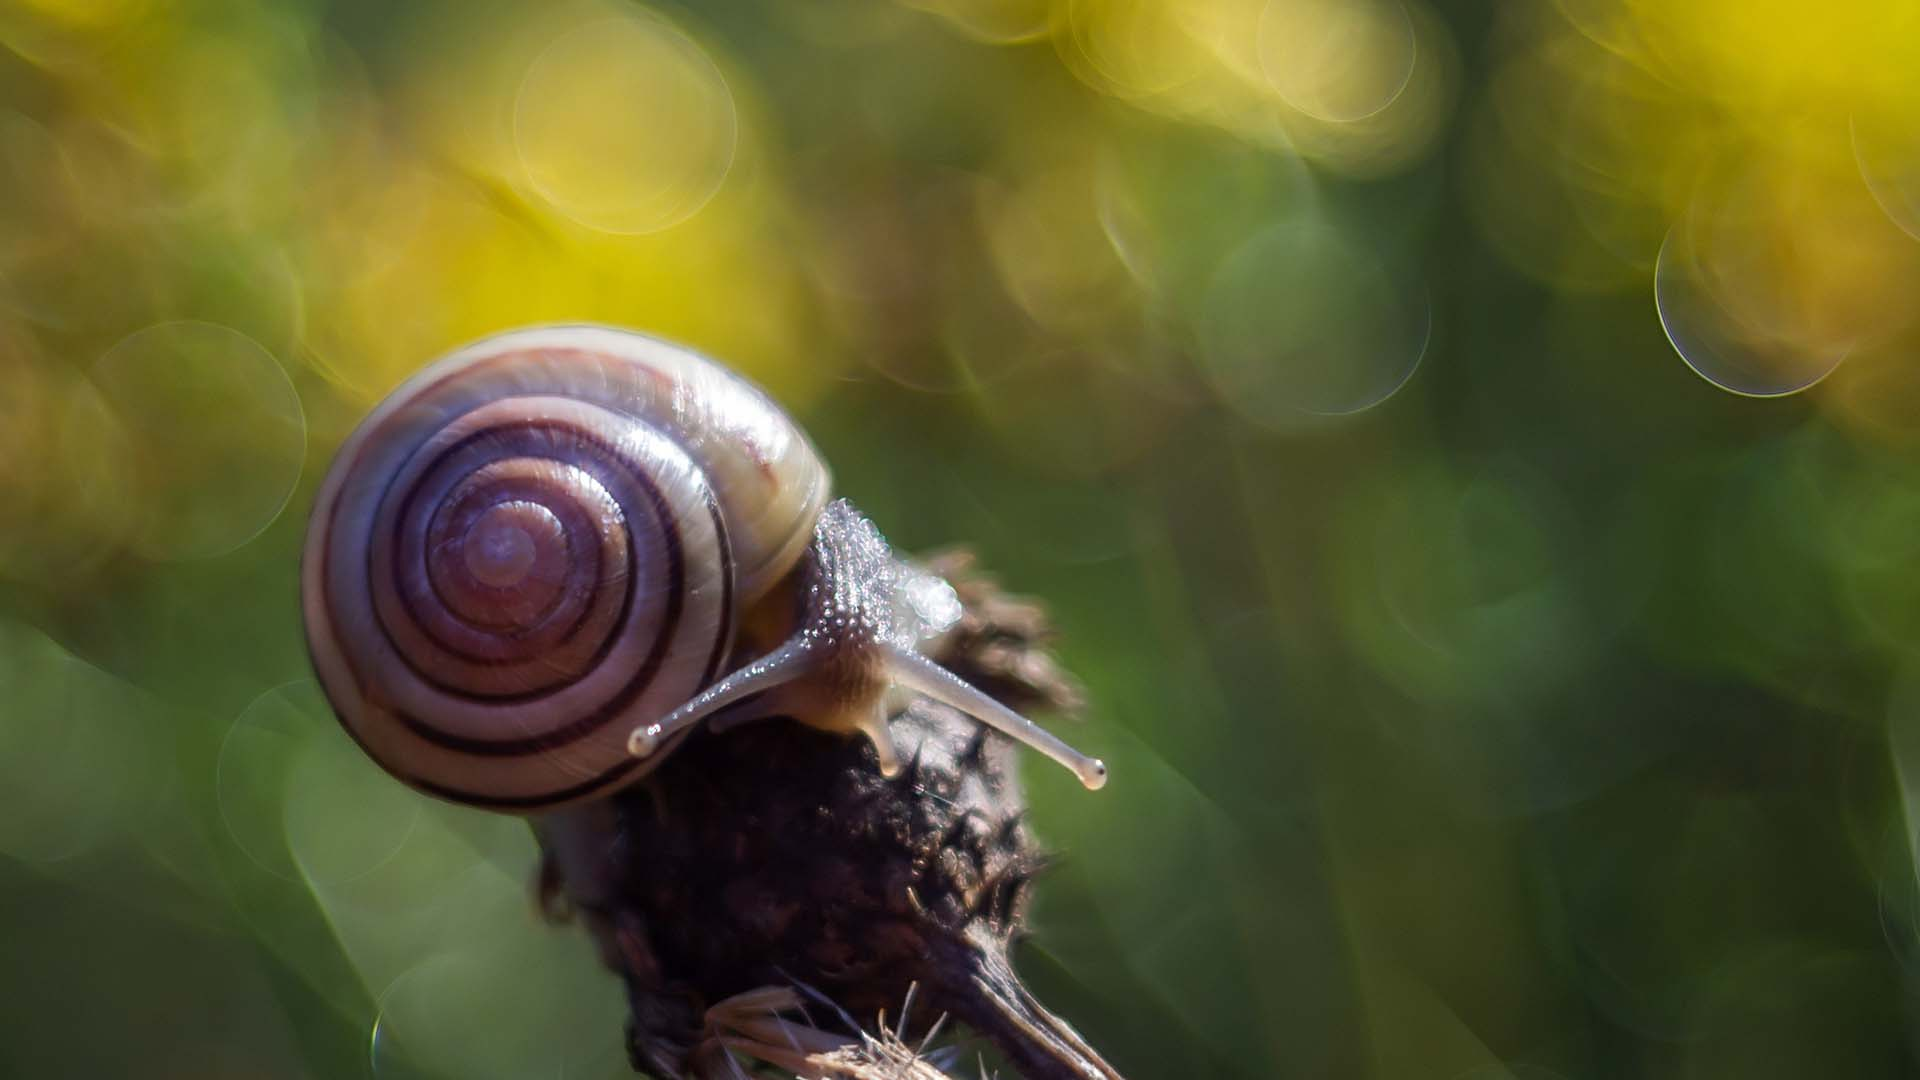 Animal Wallpaper Download 36 Excellent Hd Snail Wallpapers